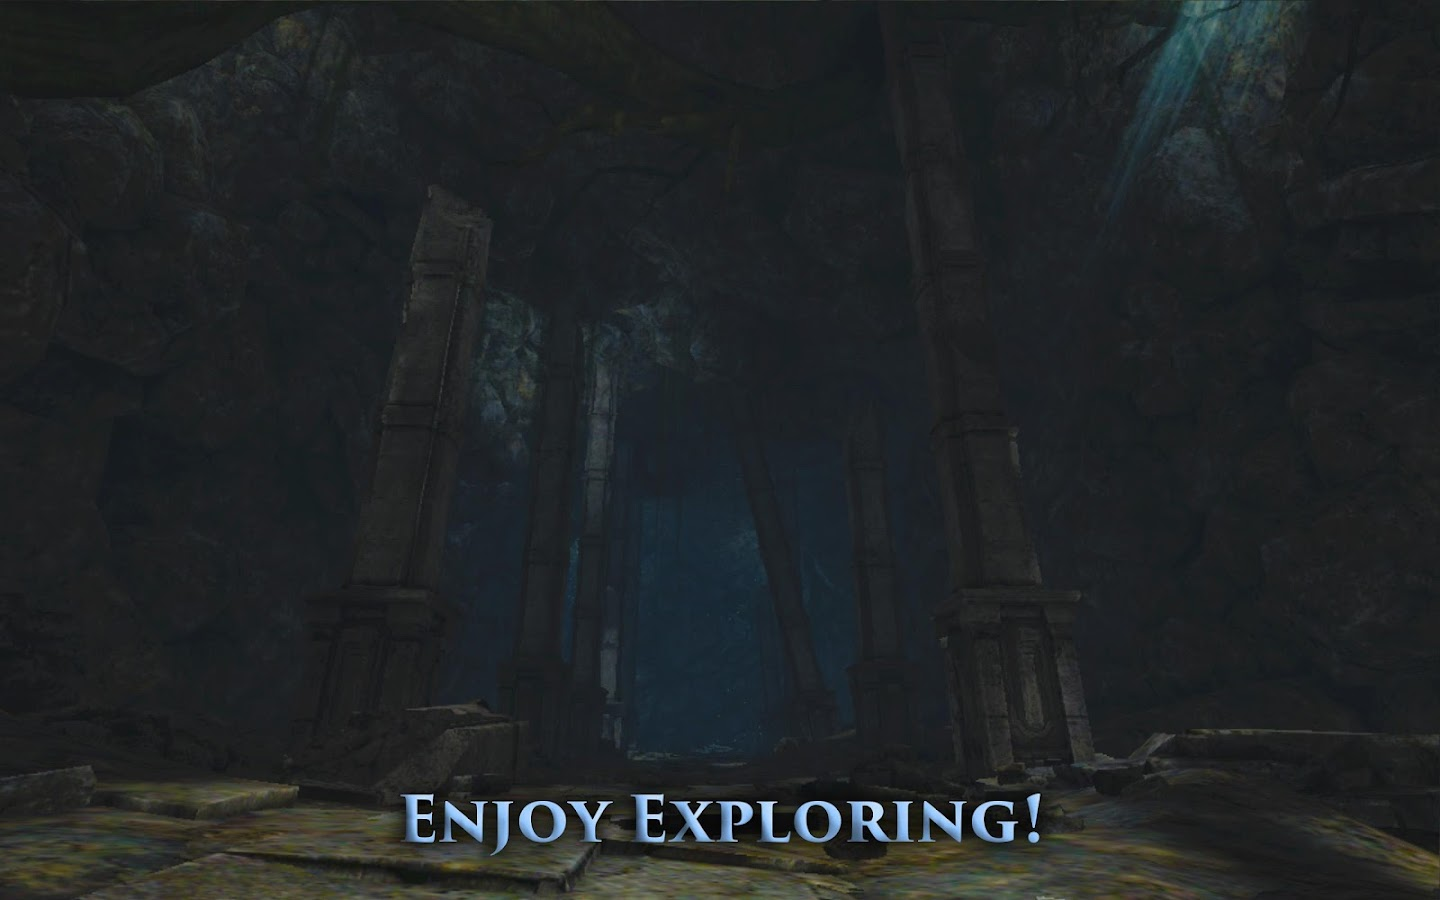 Vr Cave 7 3 Apk Download Android Entertainment Apps # Muebles Tata Vasco